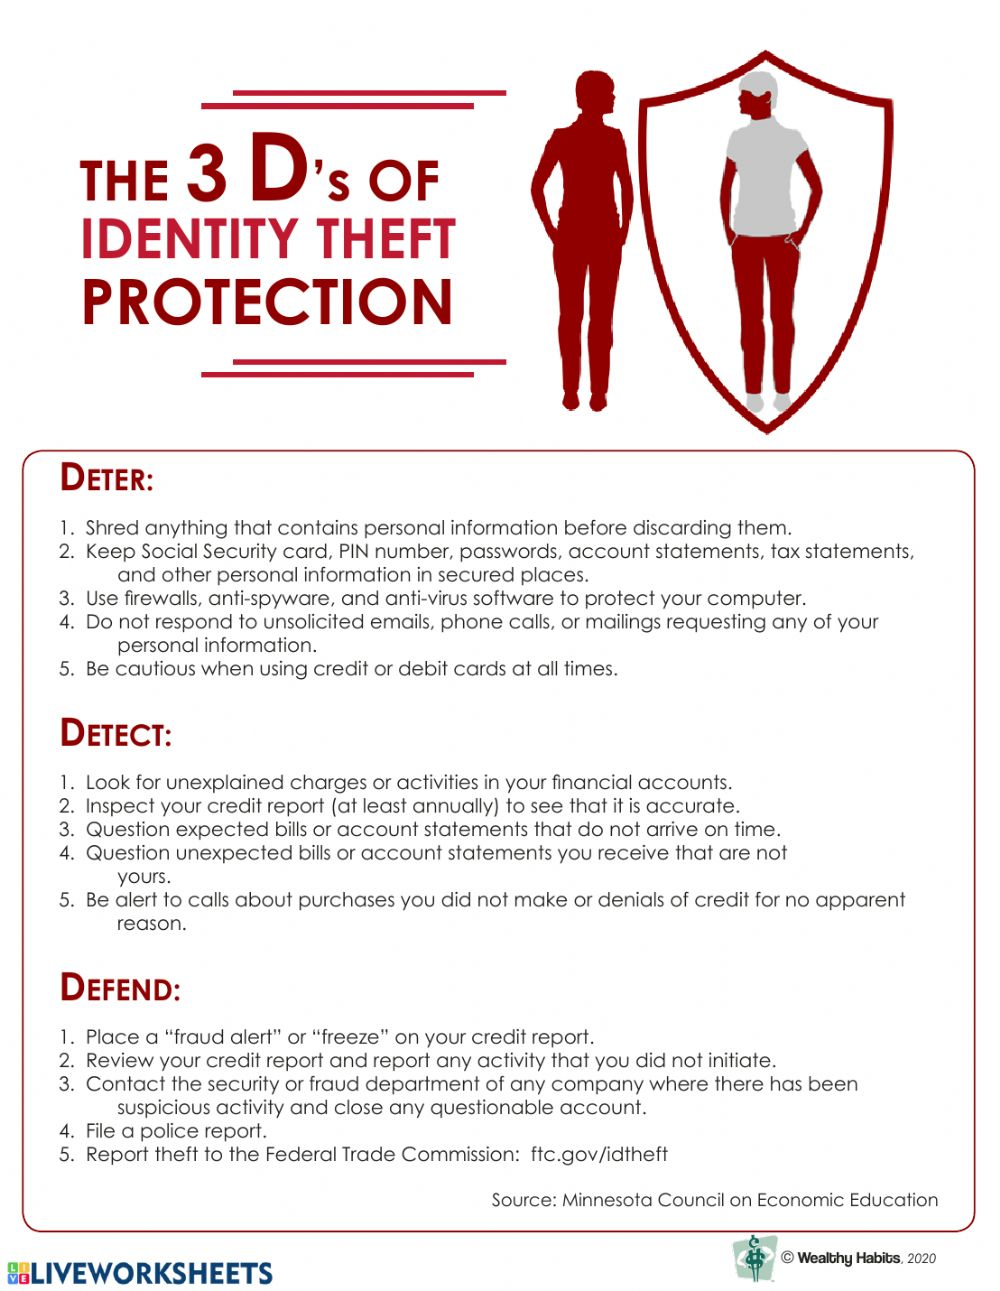 Wealthy Habits Identity Theft Protection Worksheet